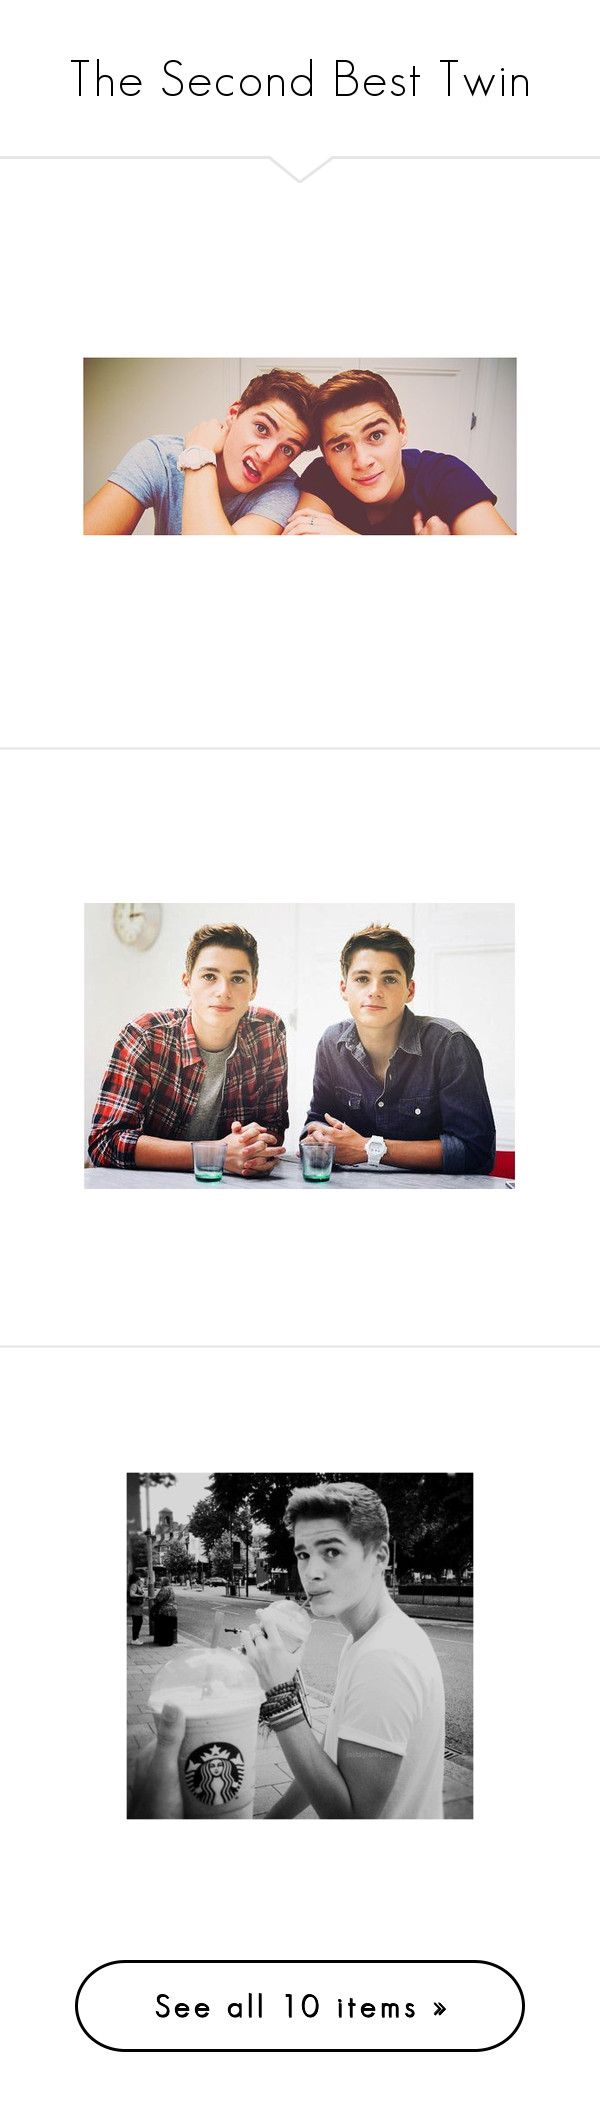 """The Second Best Twin"" by amazinglilyisnotonfire ❤ liked on Polyvore featuring youtubers, jack and finn, pictures, boys, people, jack & finn harries, harries twins, backgrounds and guys"